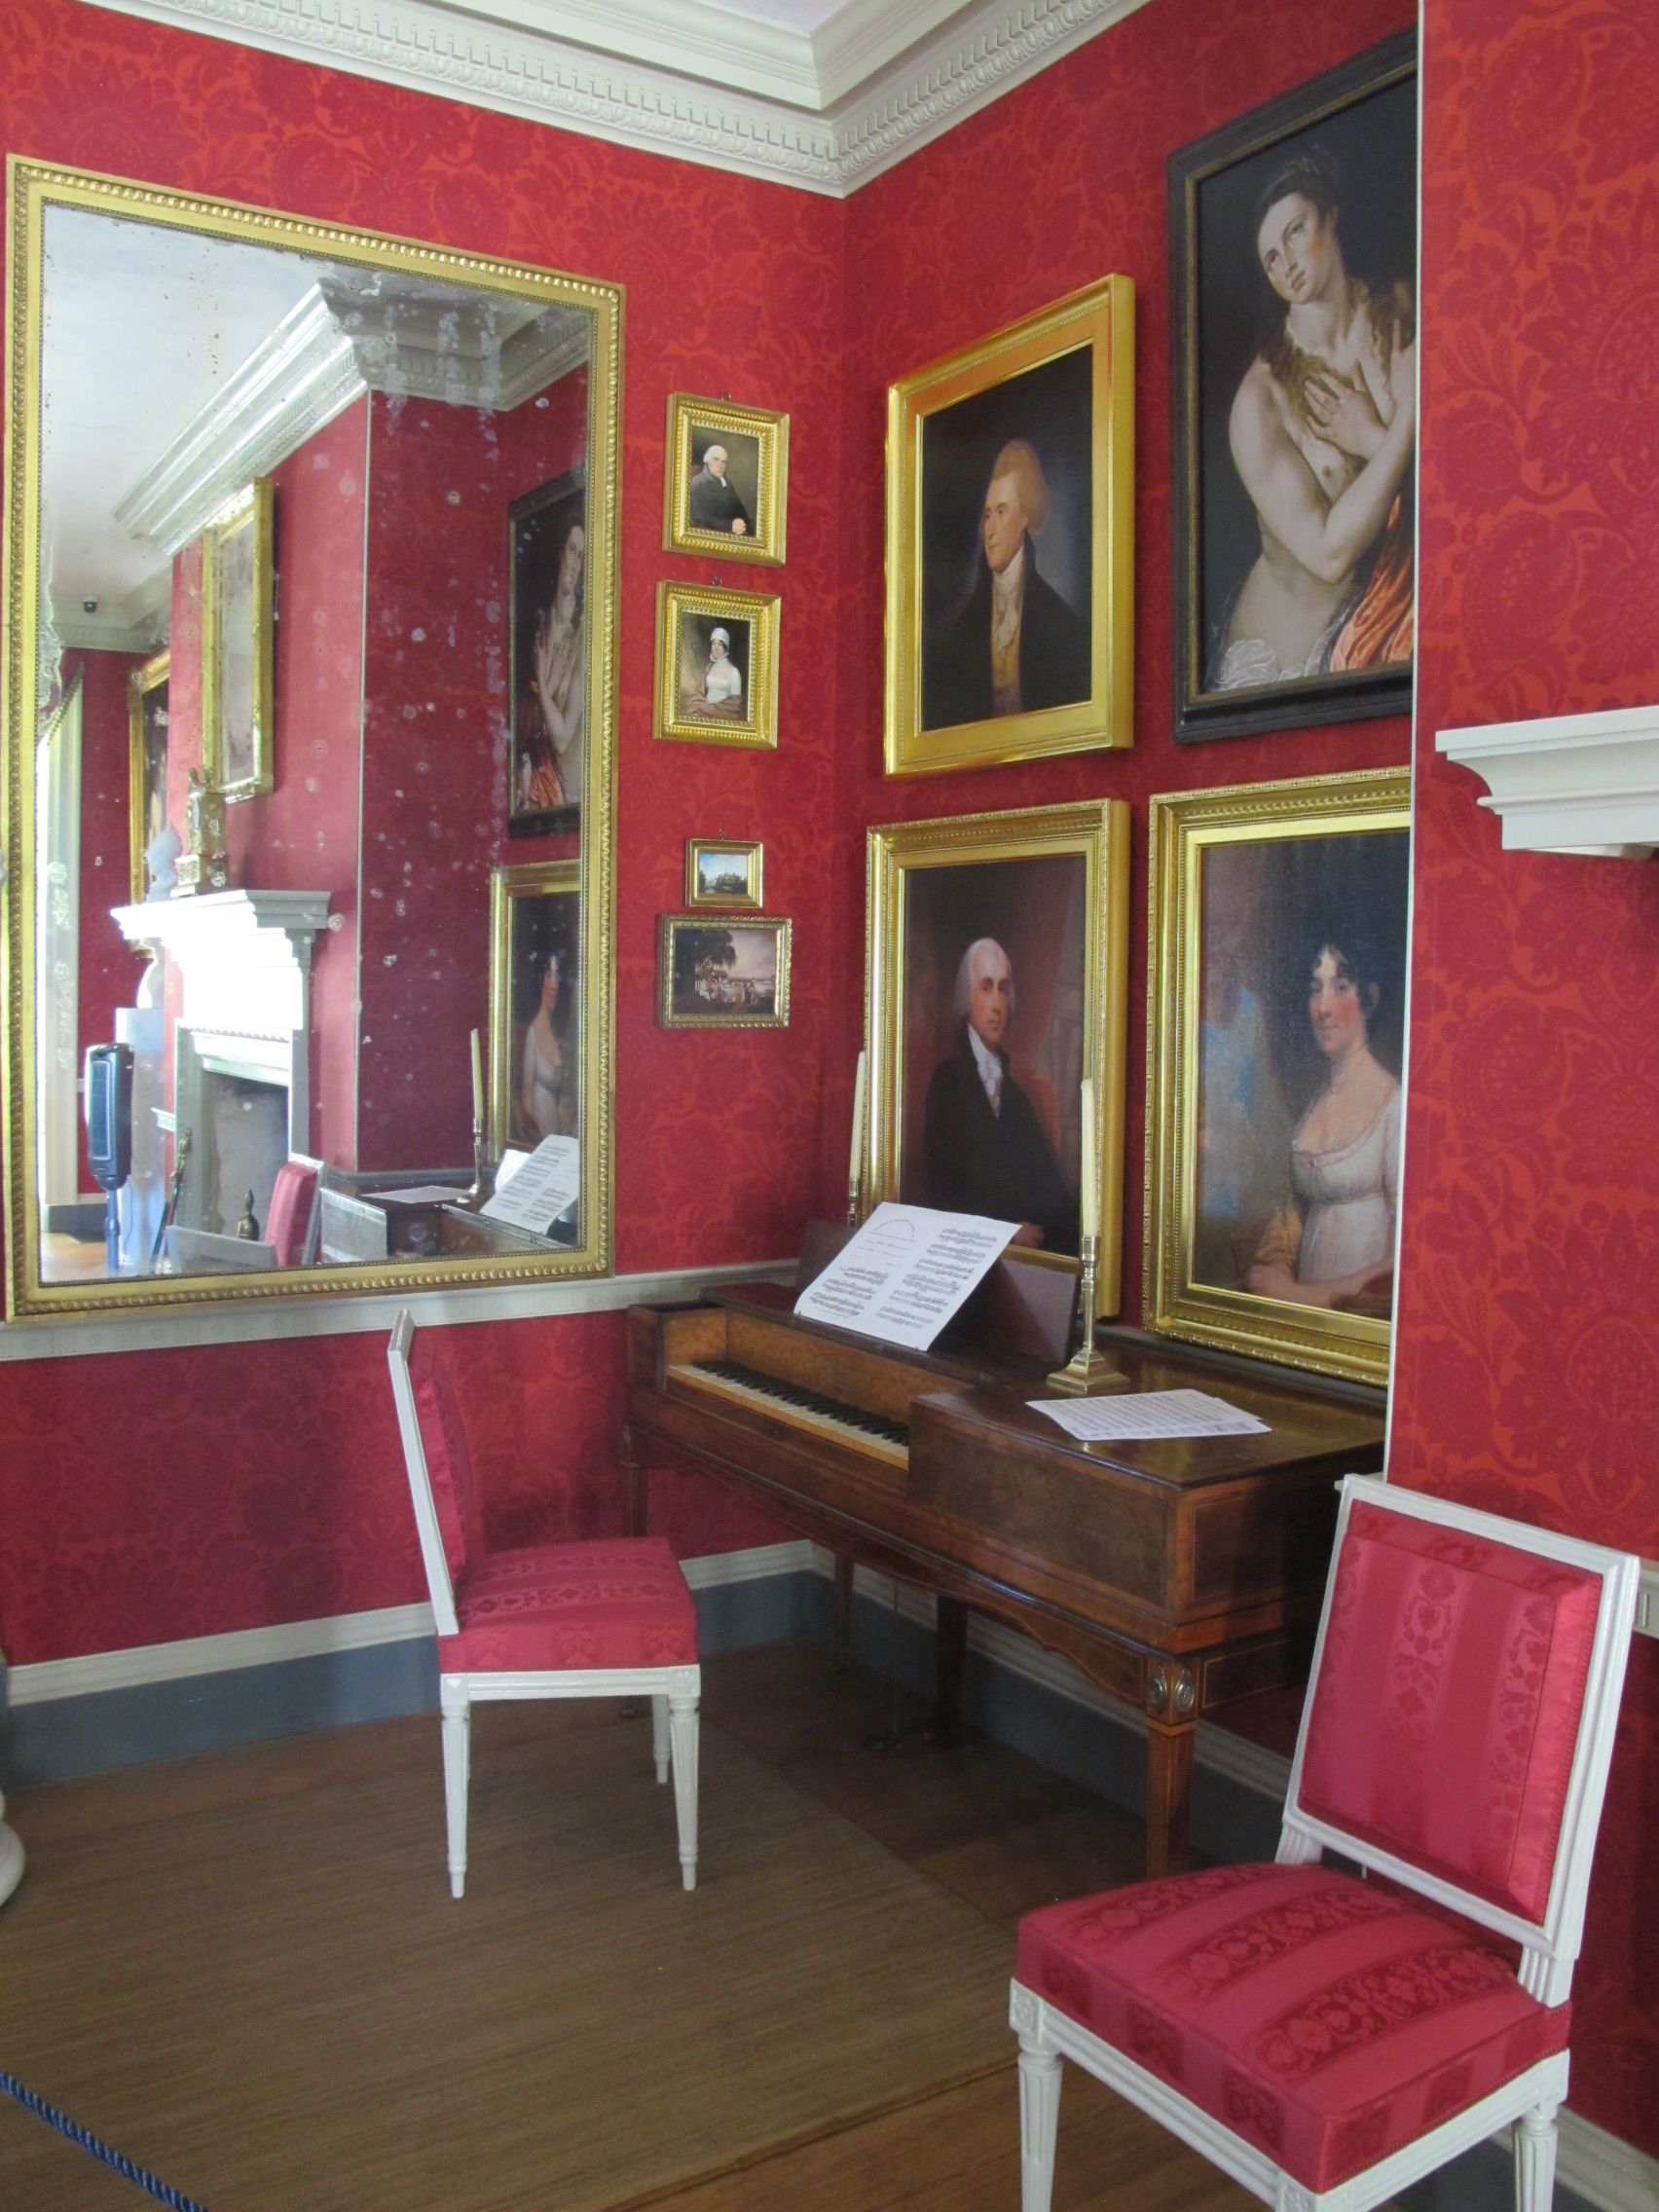 news from montpelier and belle grove in virginia